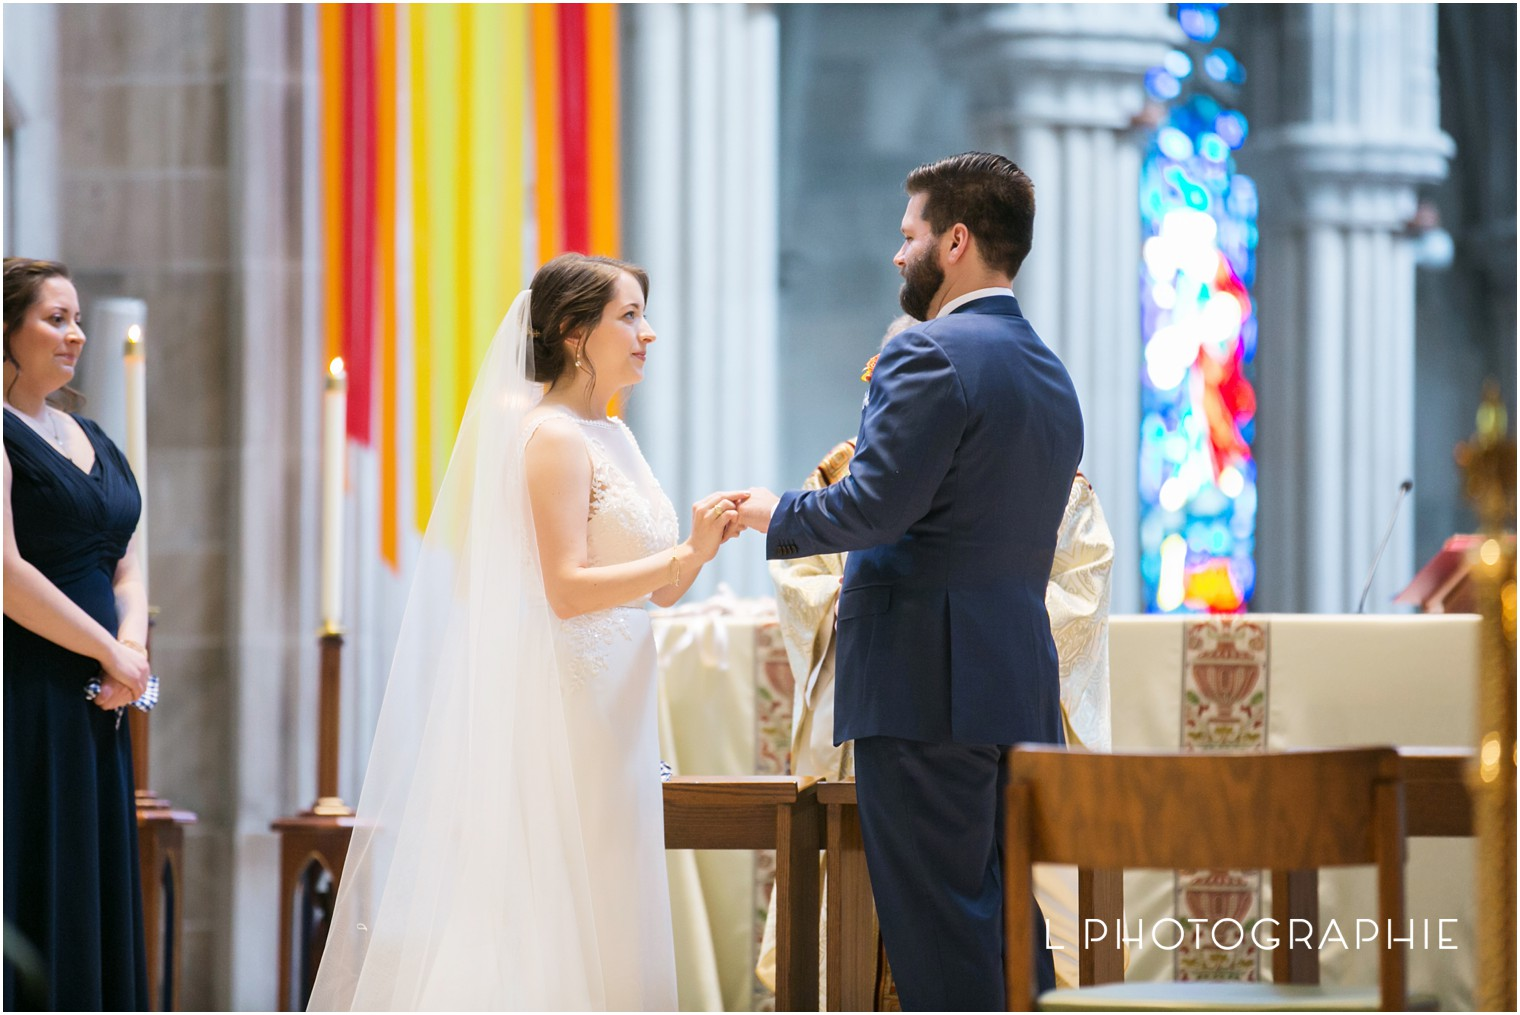 L-Photographie-Saint-Louis-wedding-photography-Cathedral-of-Saint-Peter-Forest-Park-Visitor-Center_0039.jpg